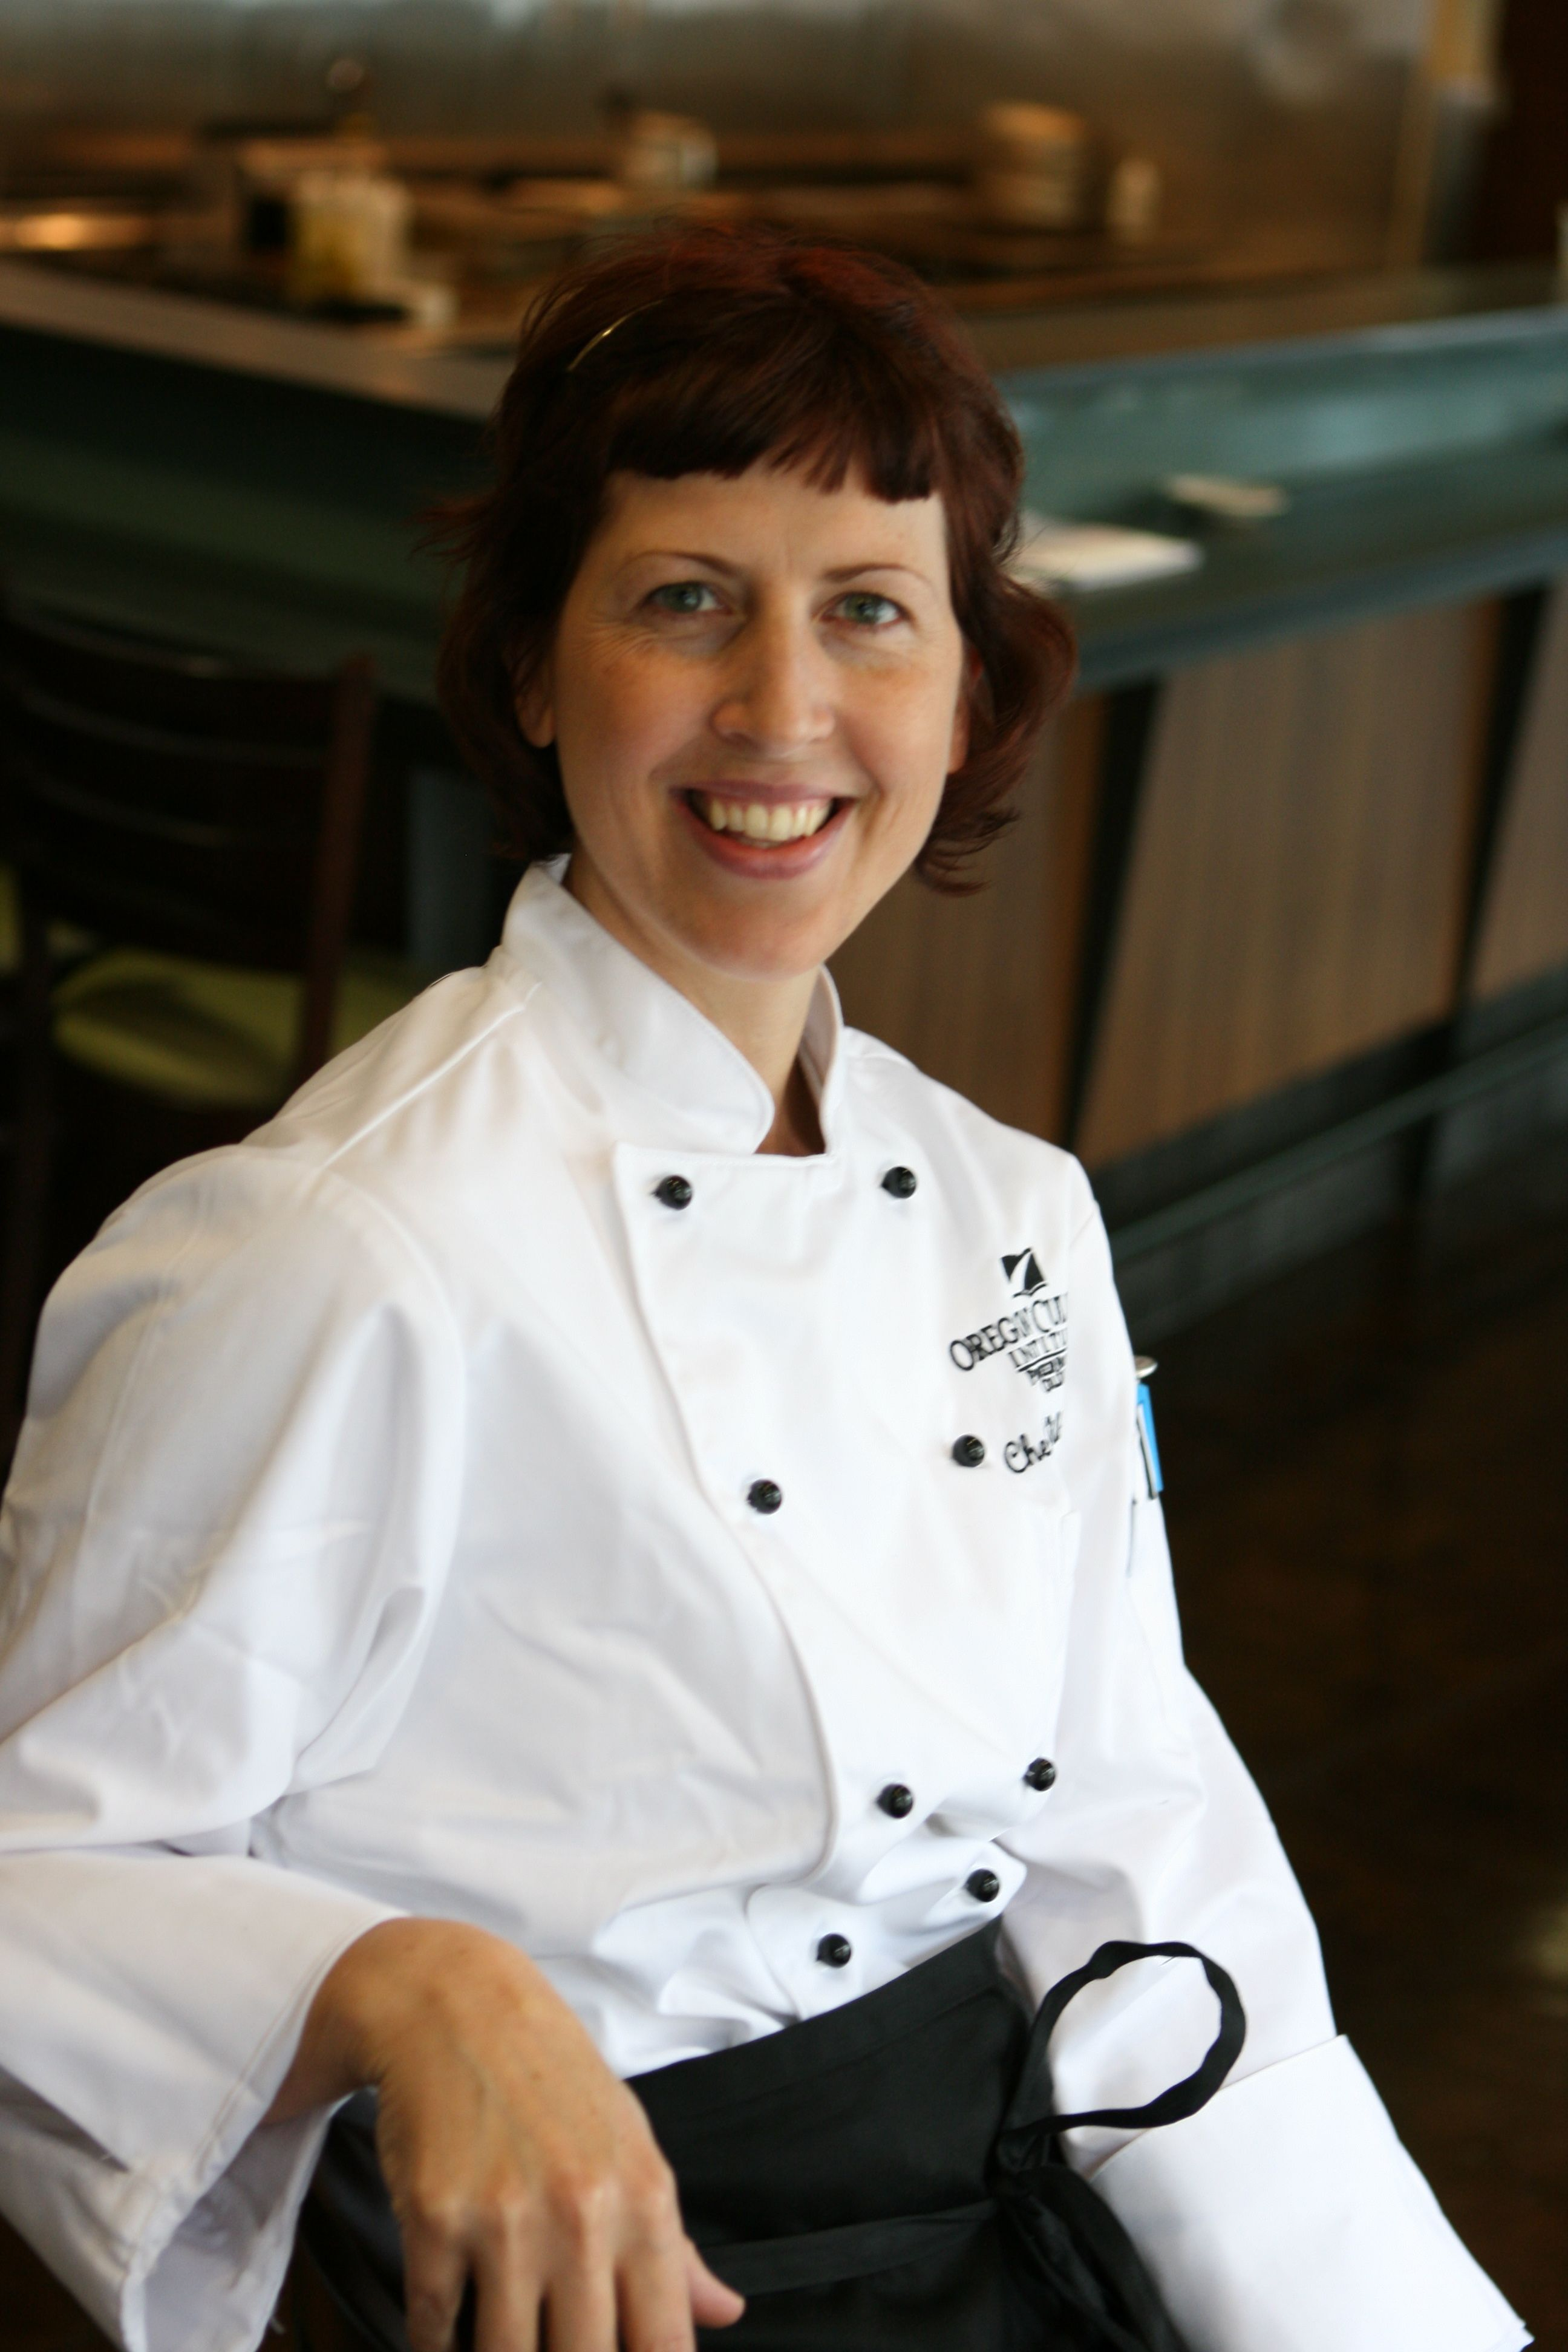 Oregon Culinary Institute Baking And Pastry 1st Term Chef Instructor Wednesday Wild Wilson